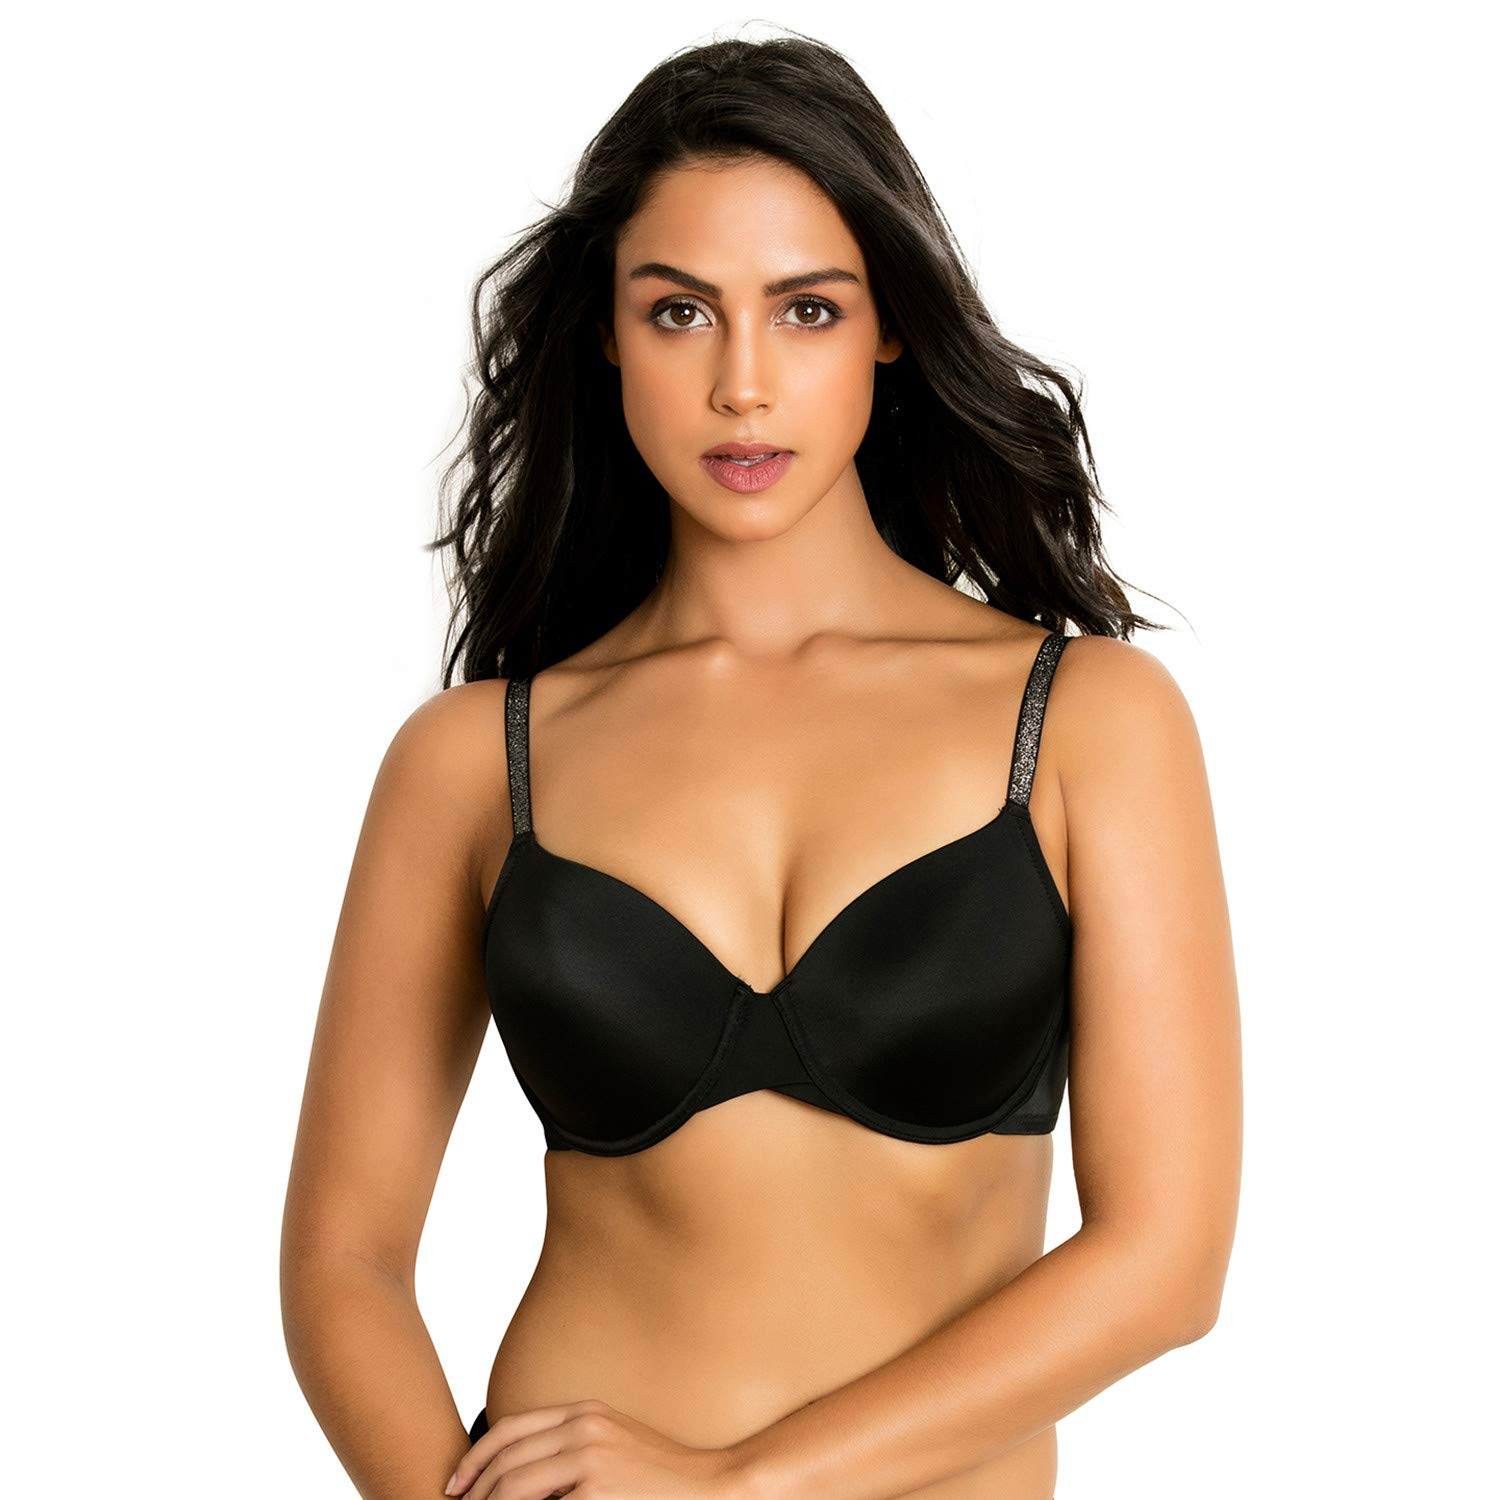 Best-Bra-Brands-In-India-05-2